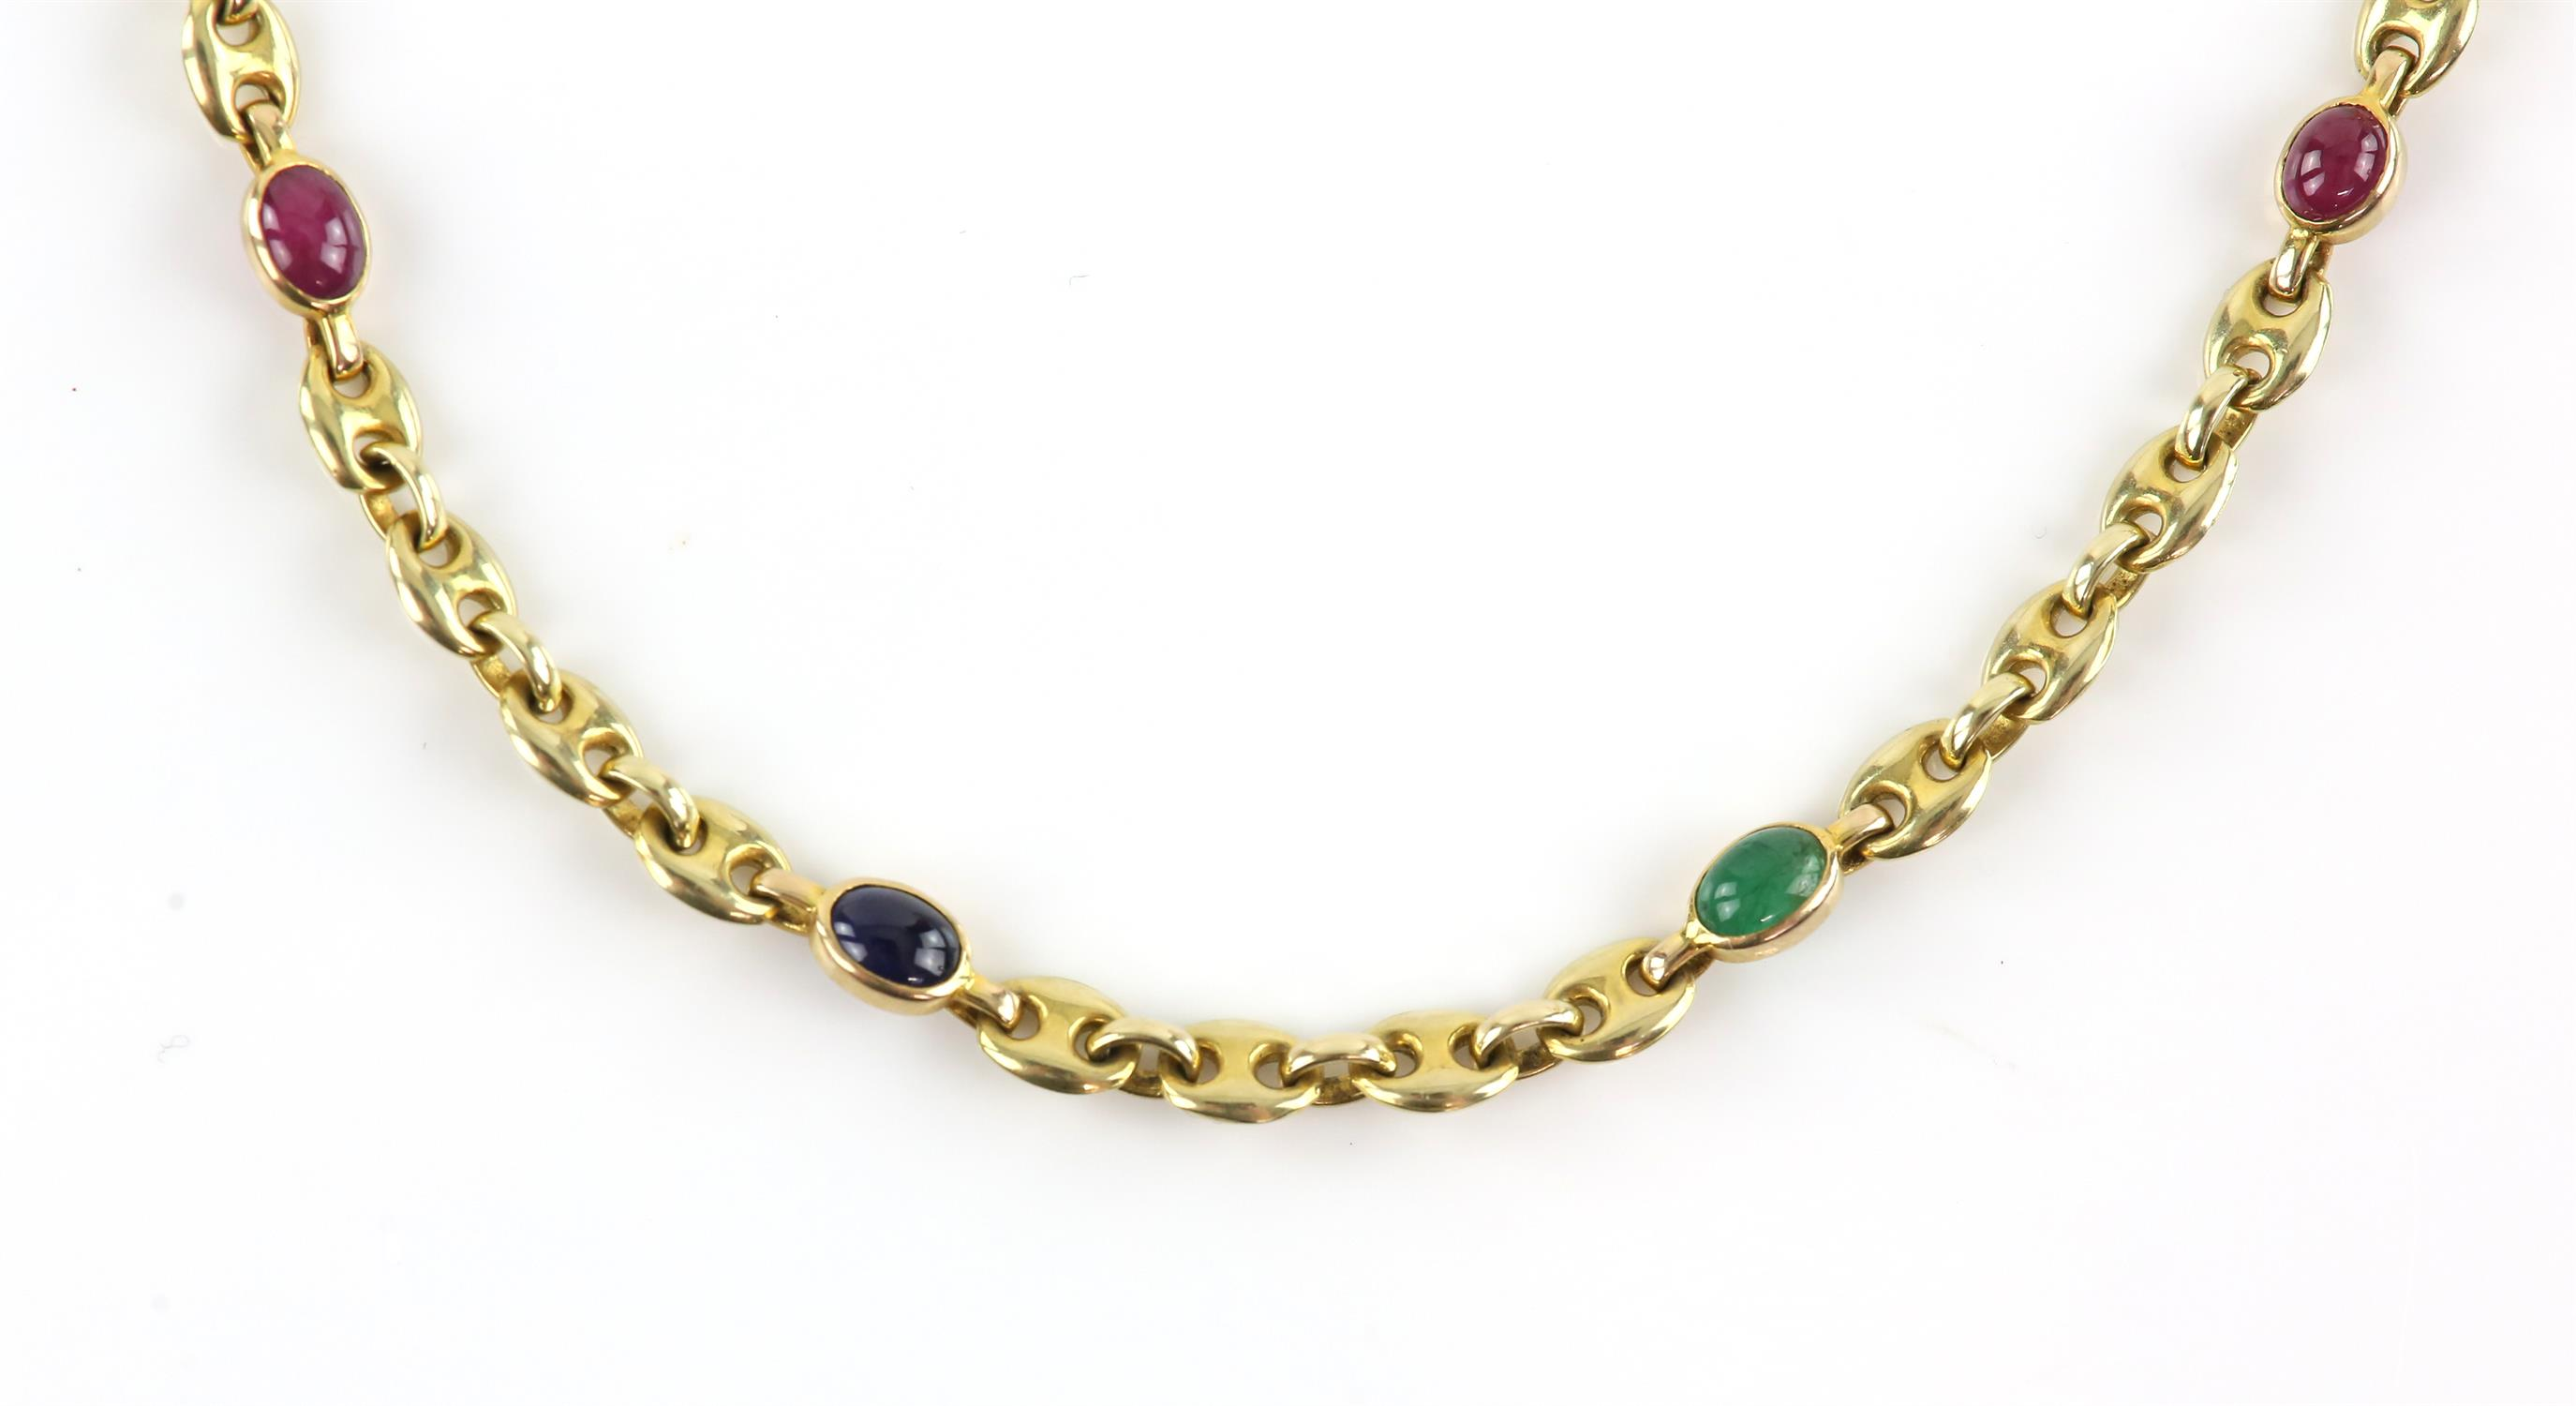 Anchor link chain, with cabochon cut rubies, sapphires and emeralds spaced throughout,